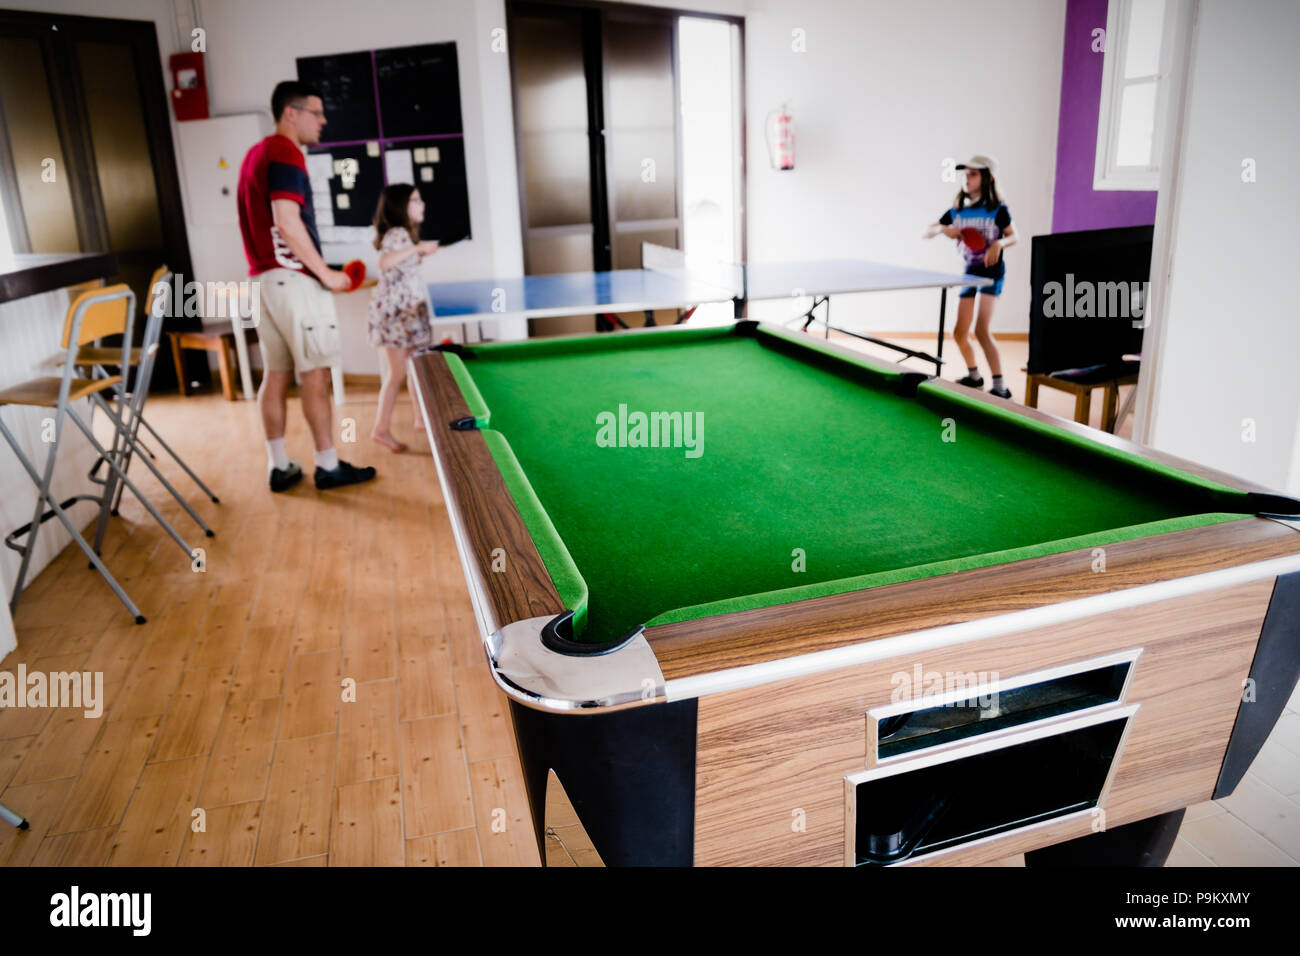 A games room with pool table in front of a family - the father is playing table tennis with his daughters in the bright bar and leisure centre - Stock Image